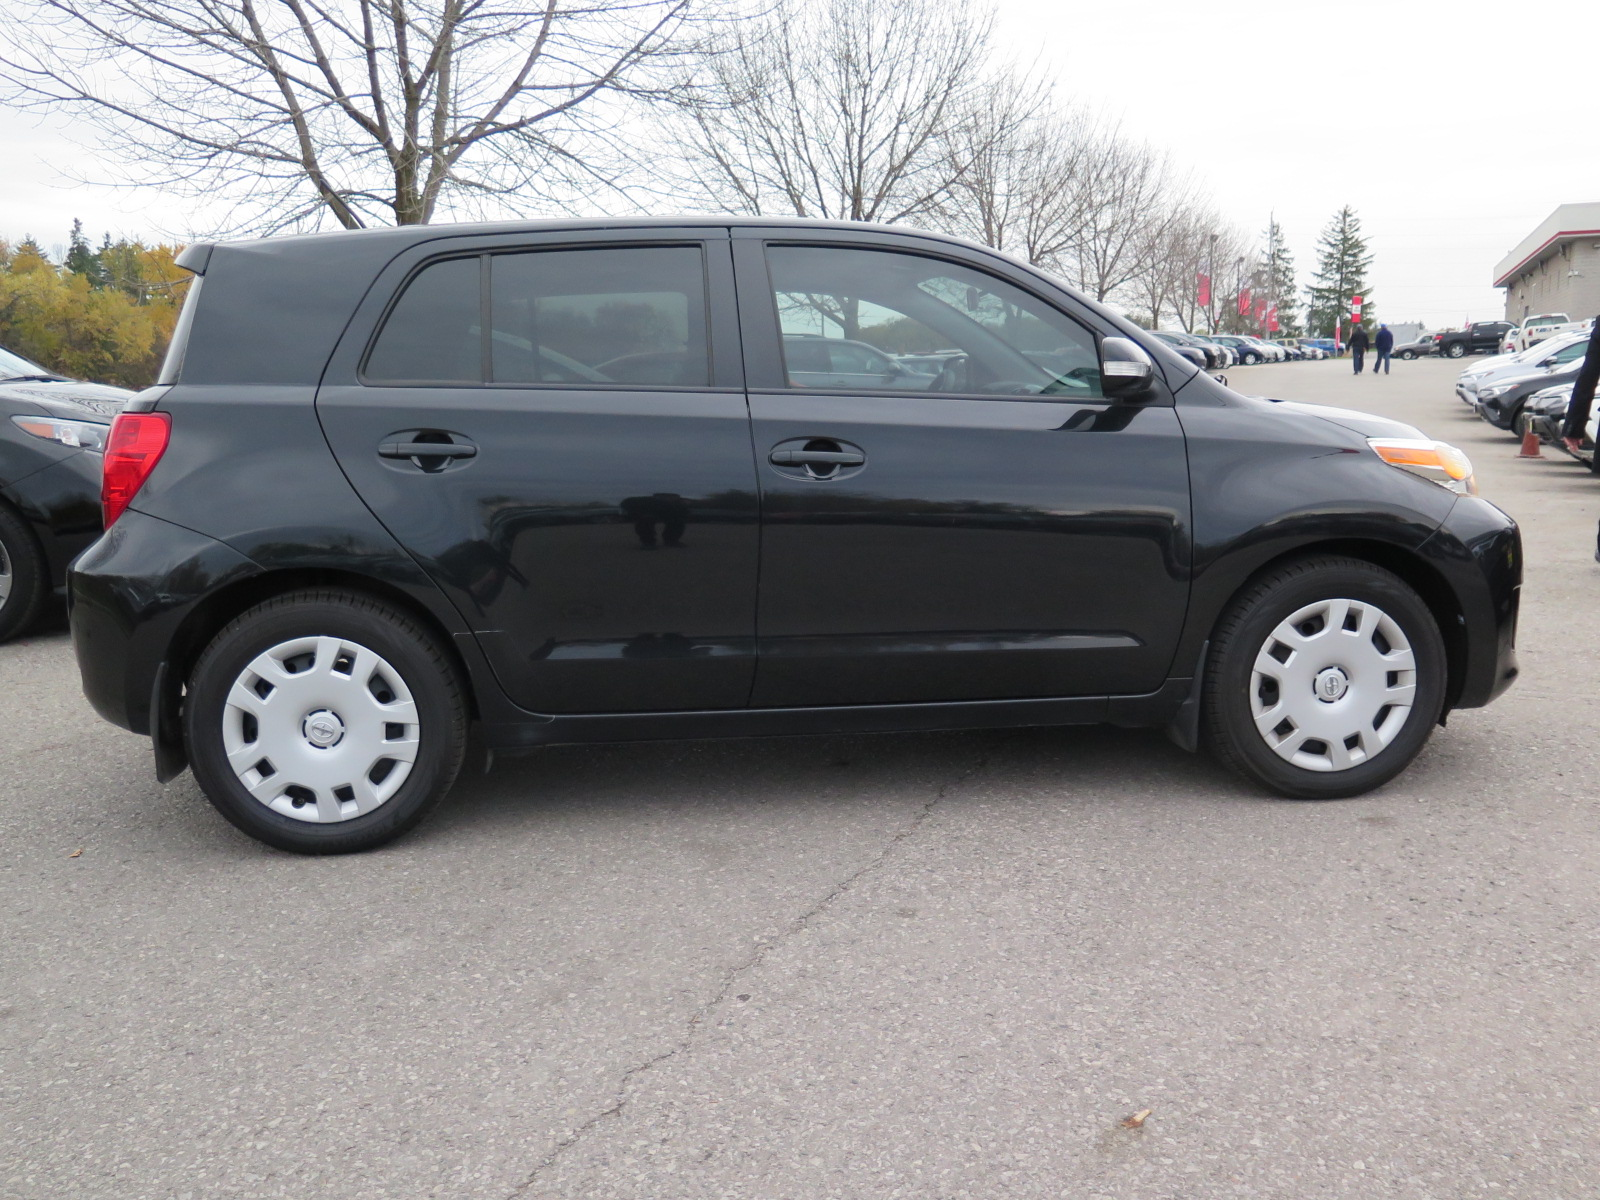 new and used scion xd prices photos reviews specs html autos weblog. Black Bedroom Furniture Sets. Home Design Ideas